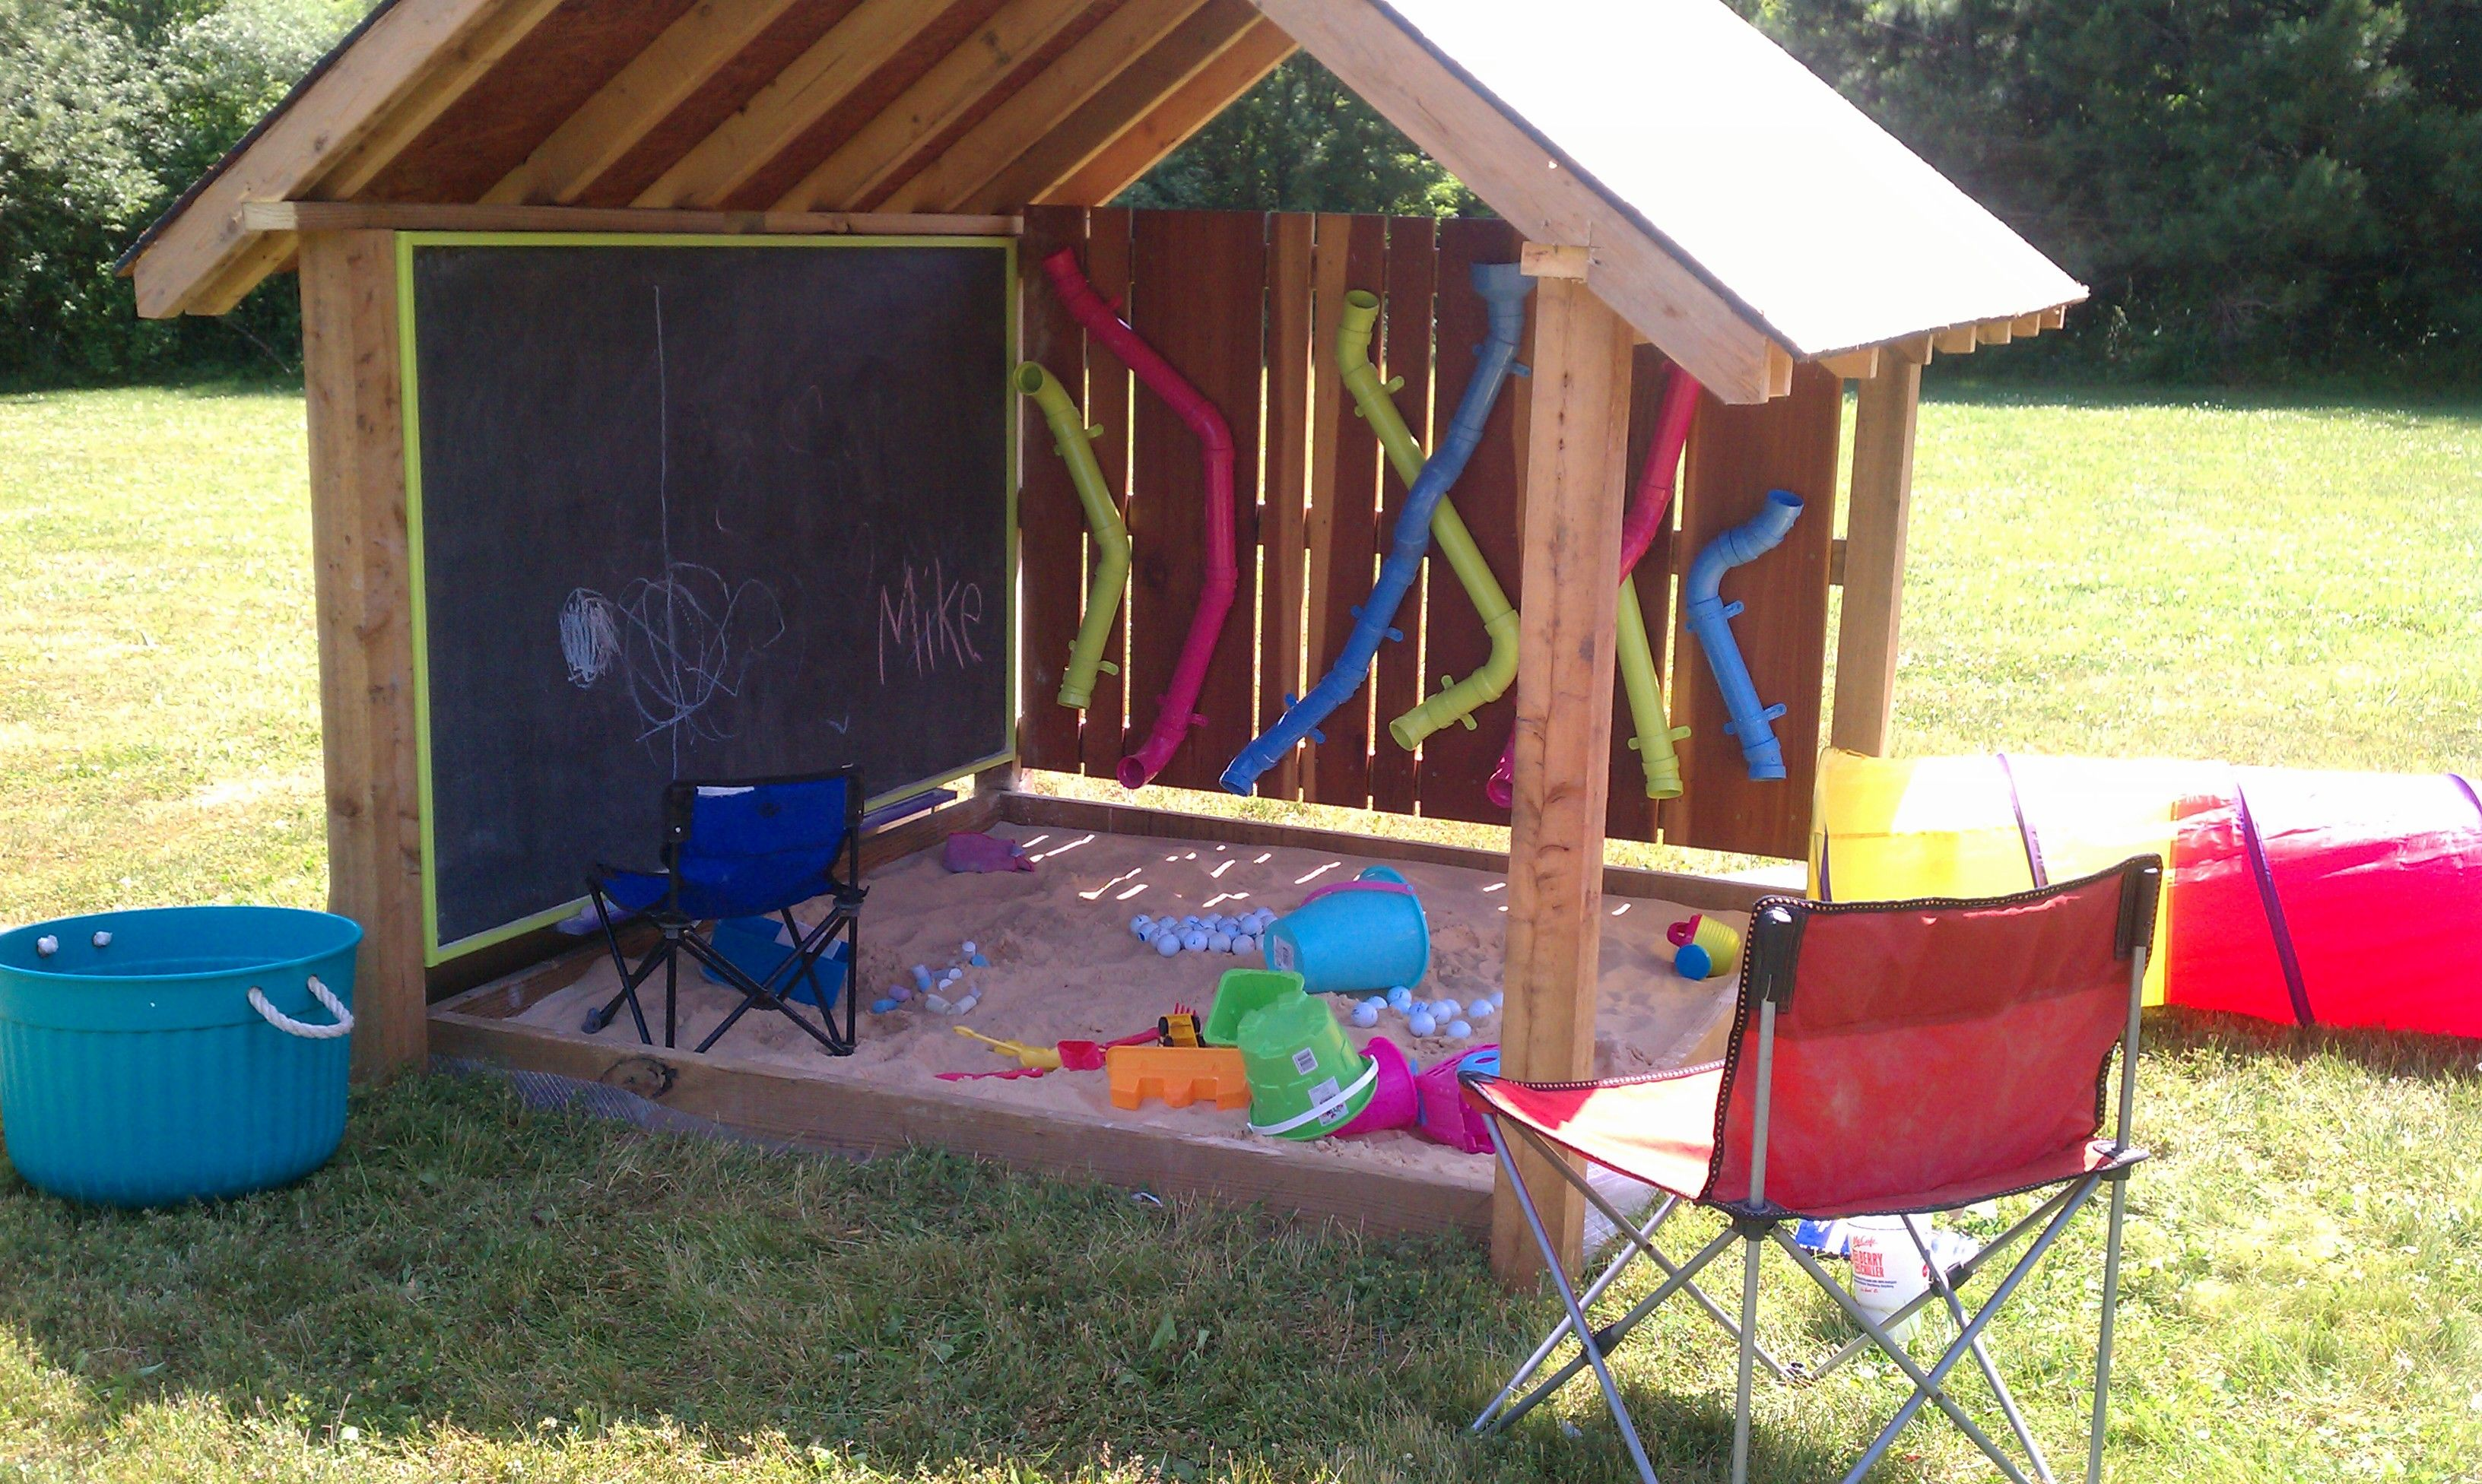 Big W Sand Pit Covered Kids Entertainment Area With Sandbox Chalkboard And